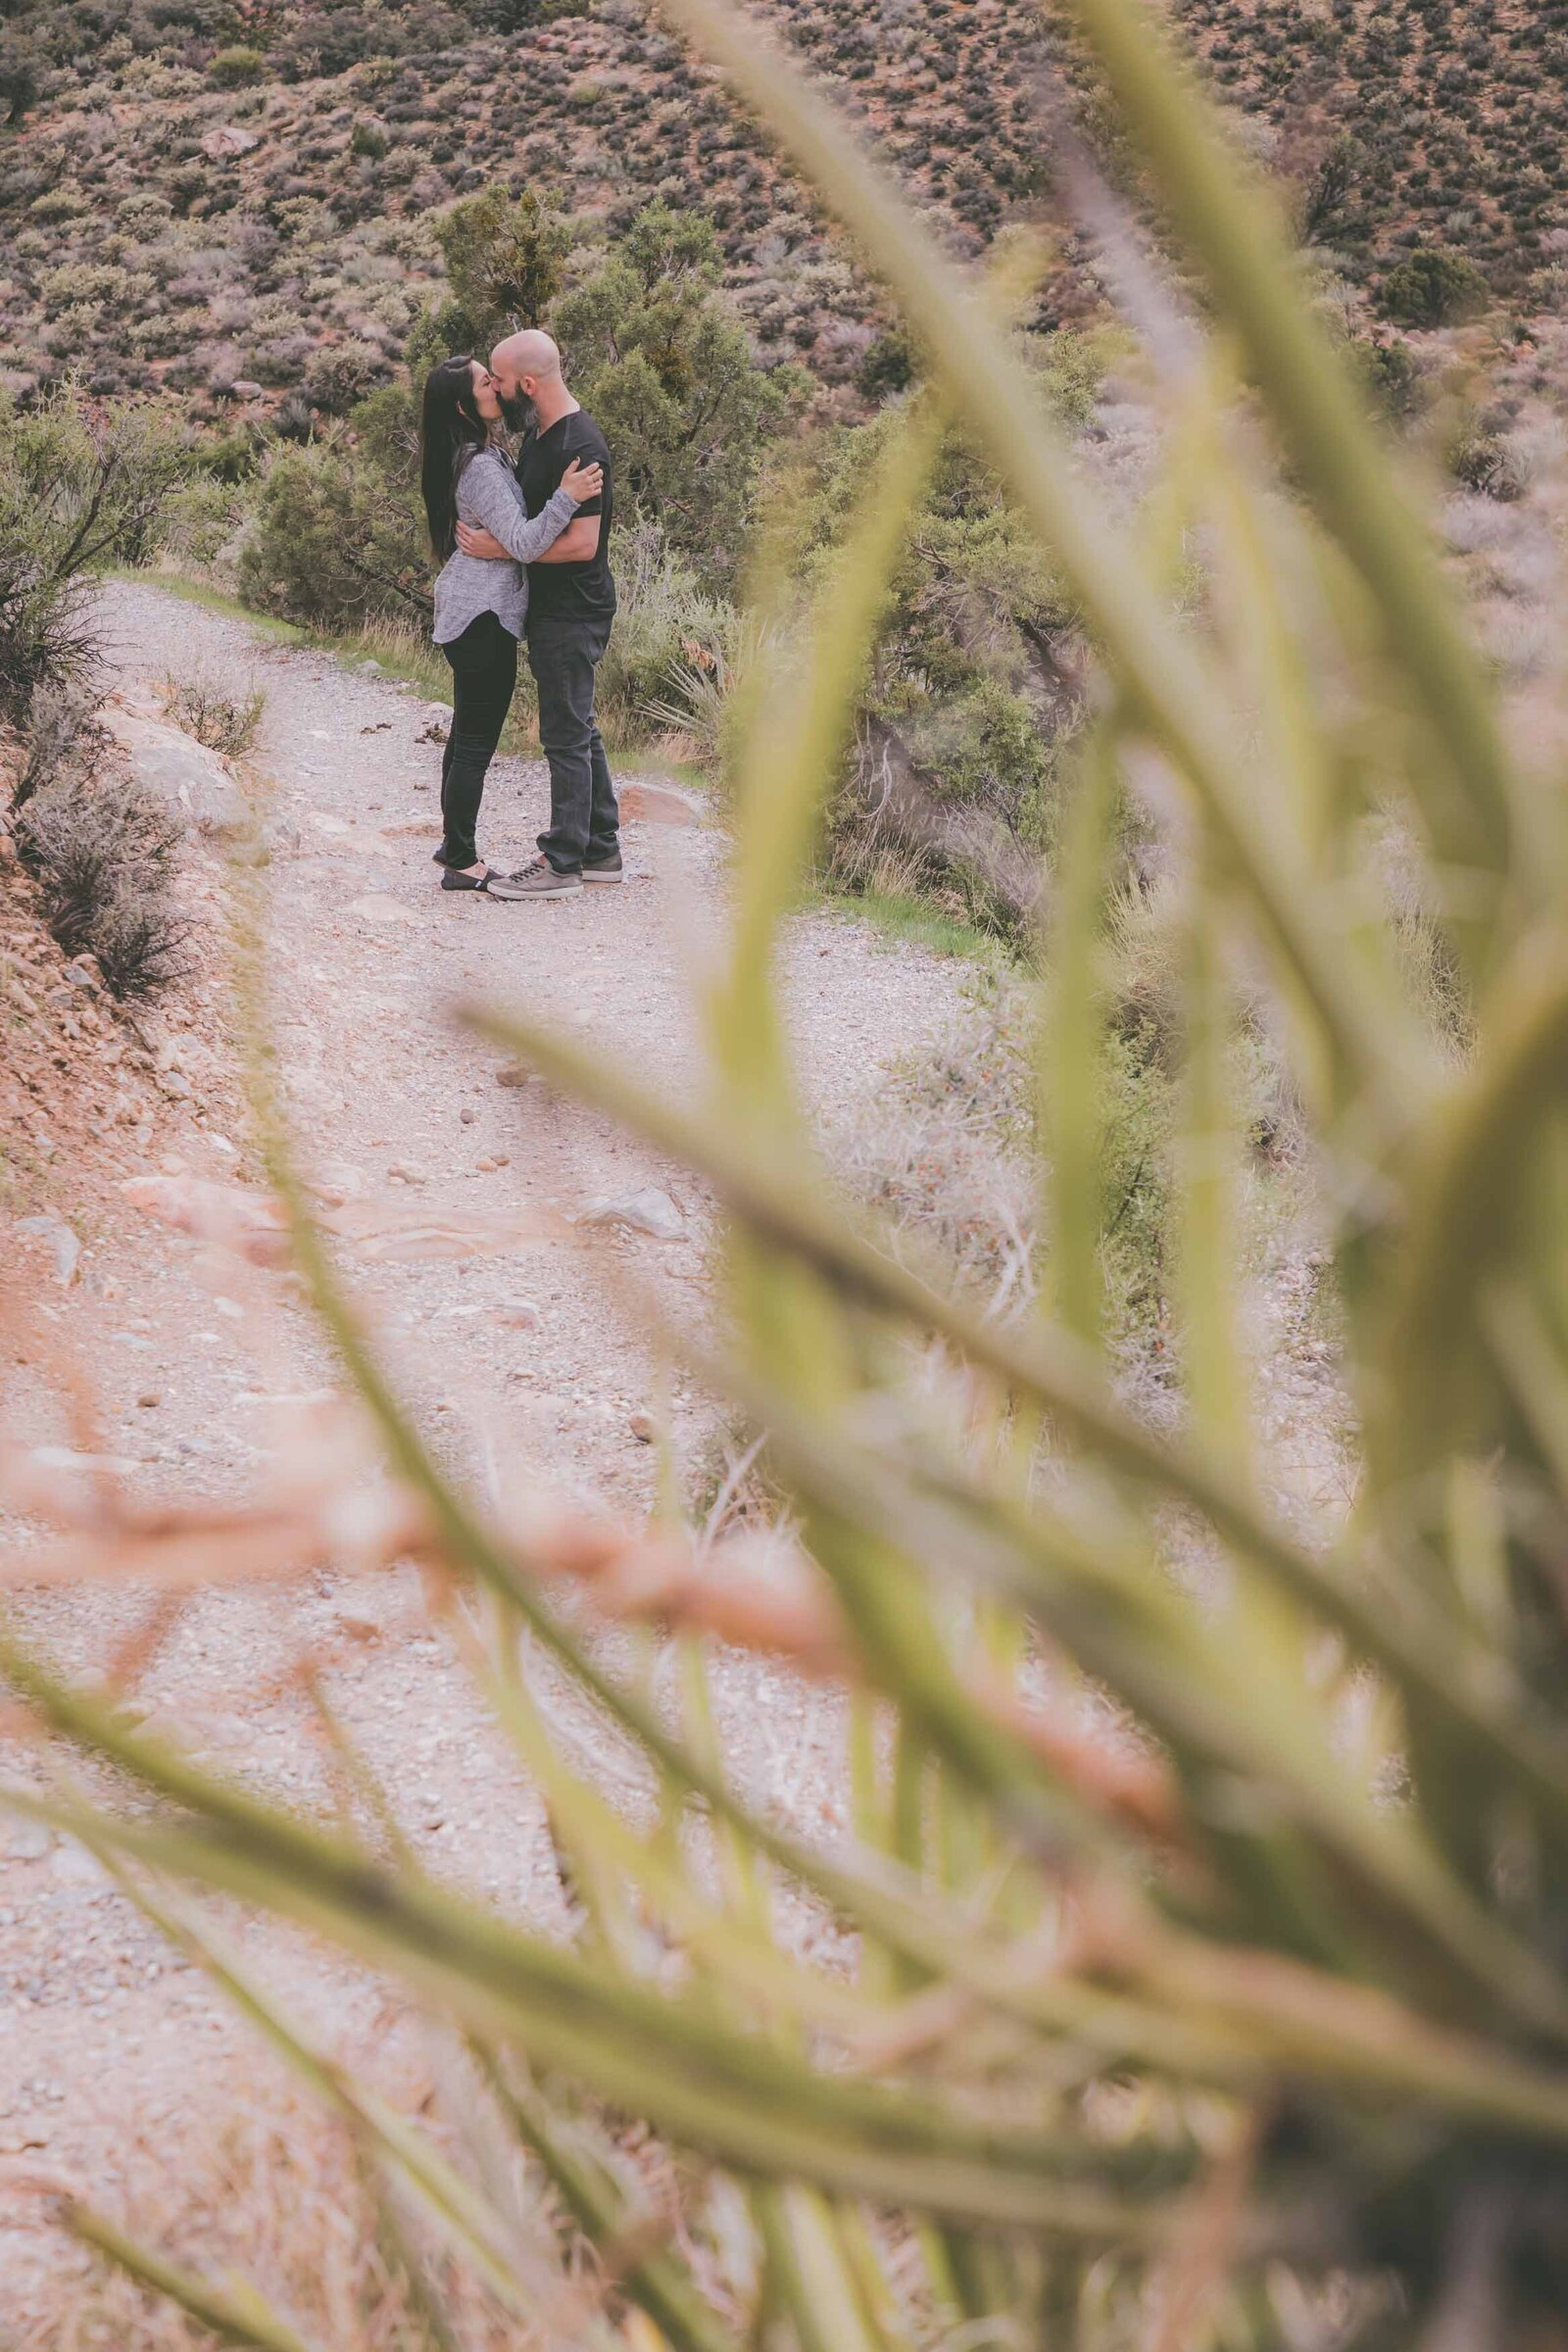 Engaged couple embrace and kiss among cacti in desert.